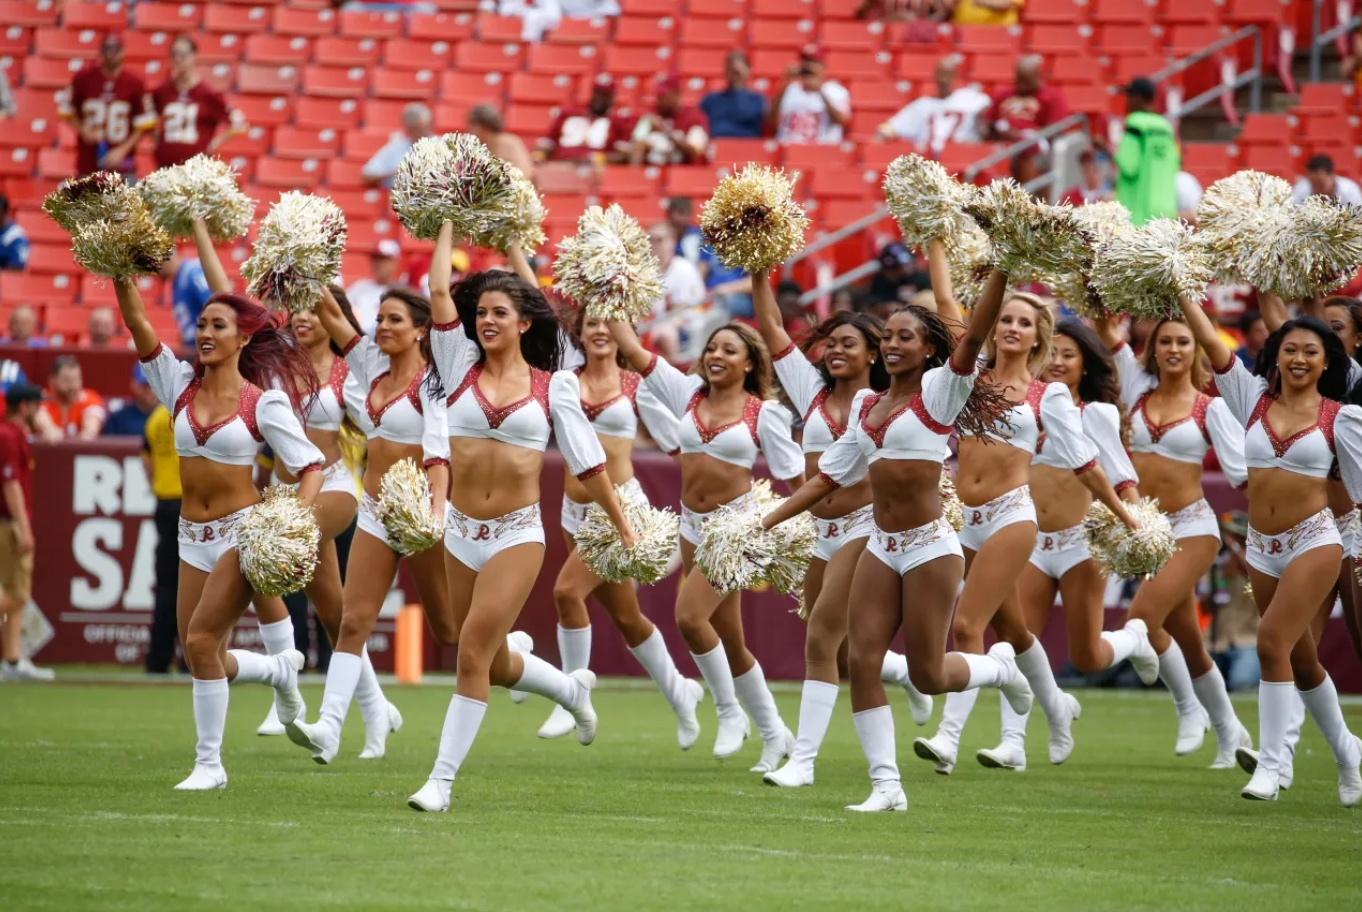 Washington Redskins Cheerleaders signature uniform